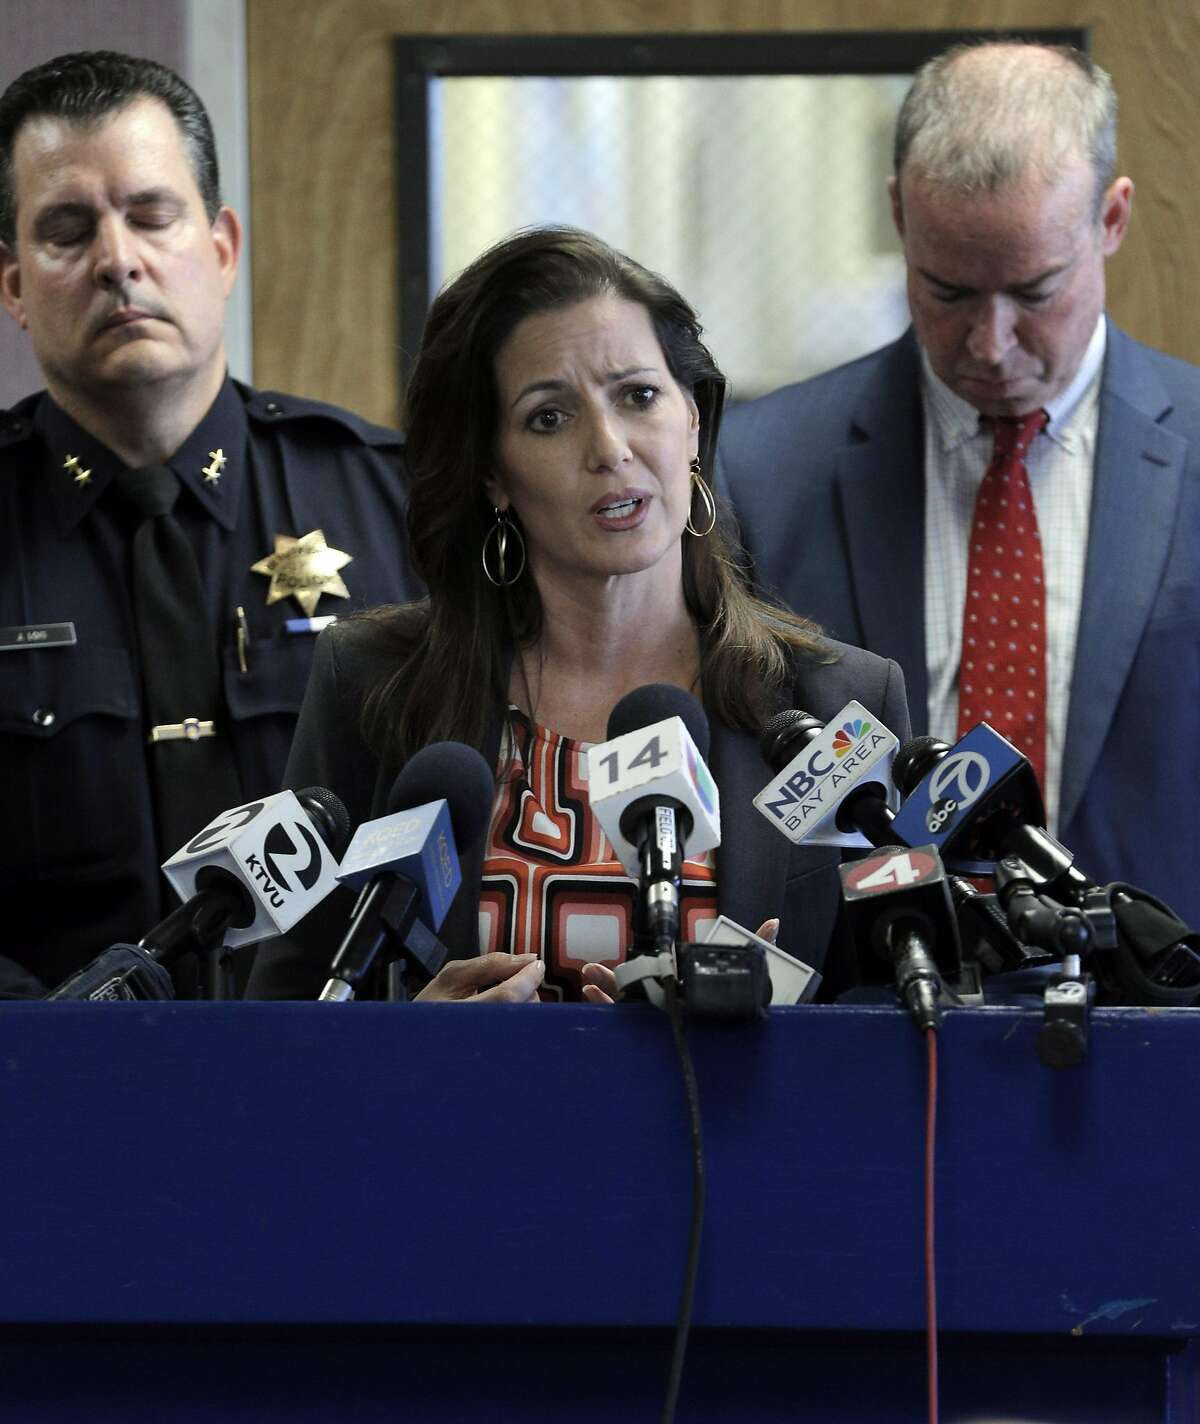 Oakland Mayor Libby Schaaf responds to reporters during a press conference detailing the arrest of an Oakland Police Officer on charges including prostition and obstruction of justice at police headquarters in Oakland, Calif., on Thursday, October 20, 2016.